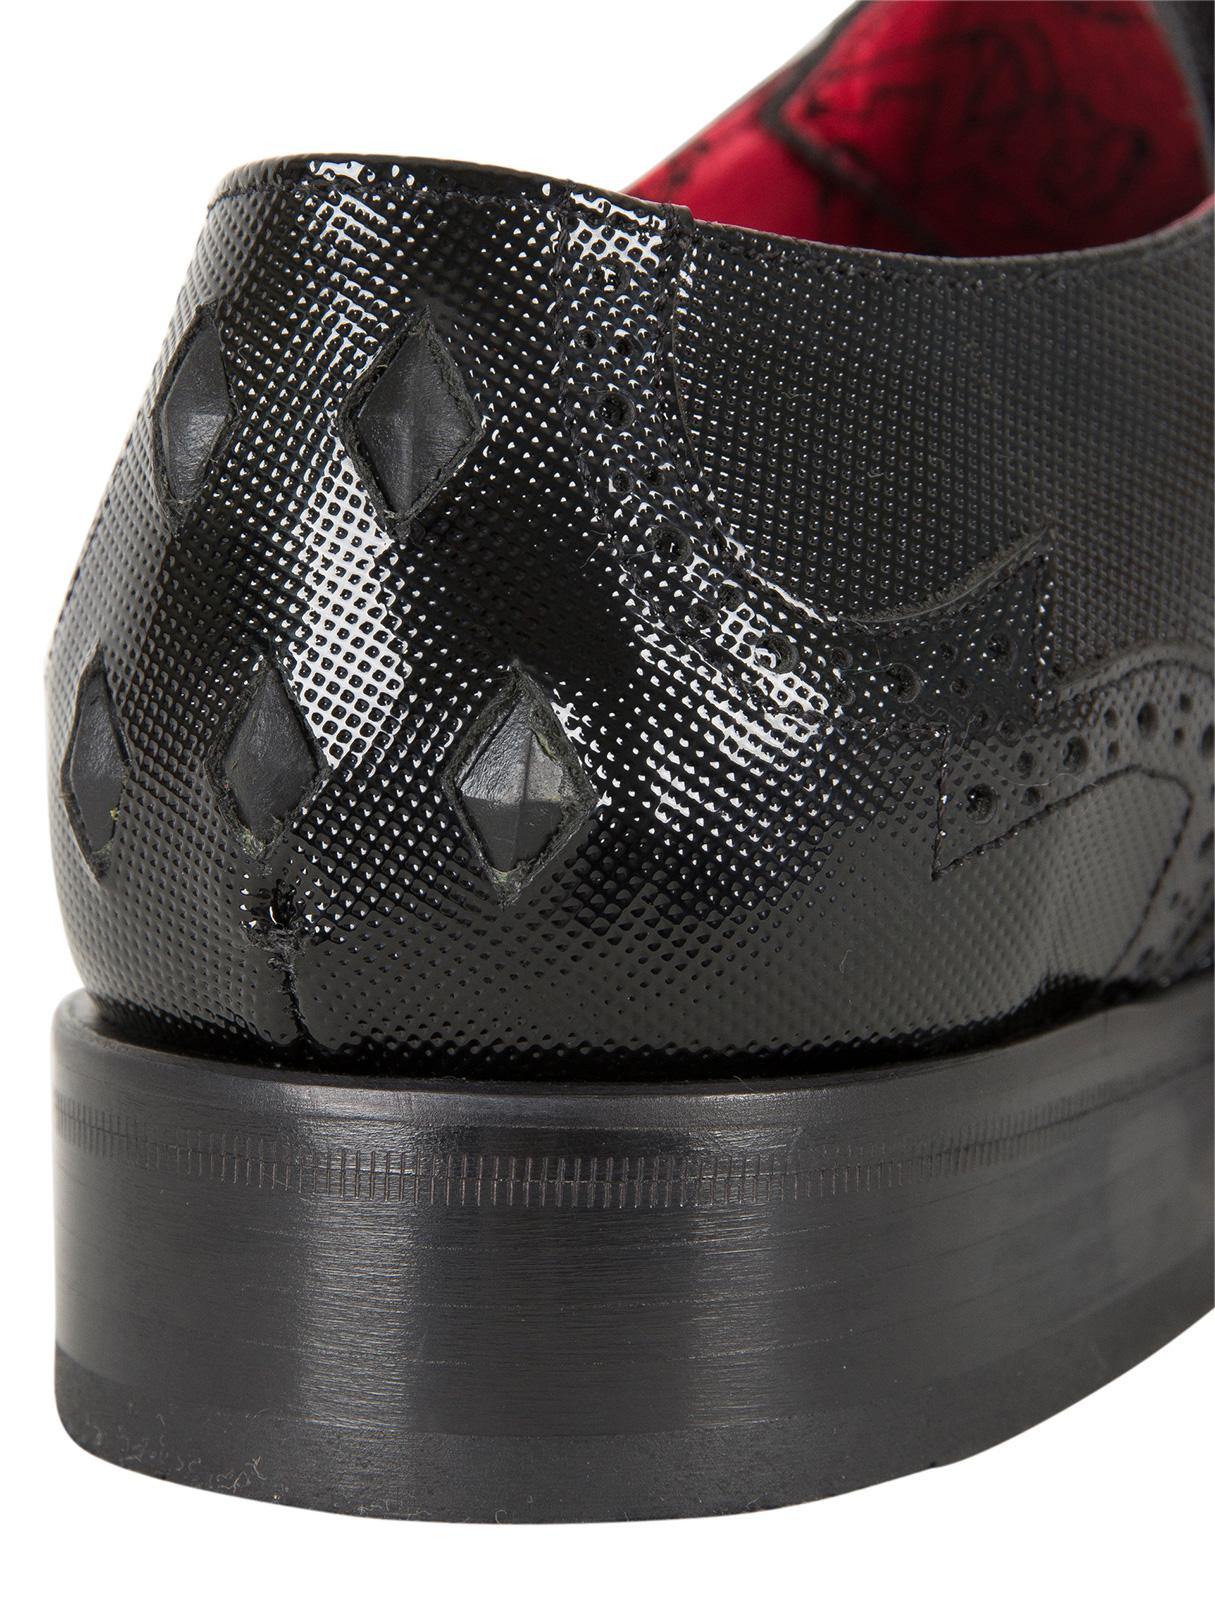 Jeffery West Leather Charcoal Black Yardb Printed Shoes for Men